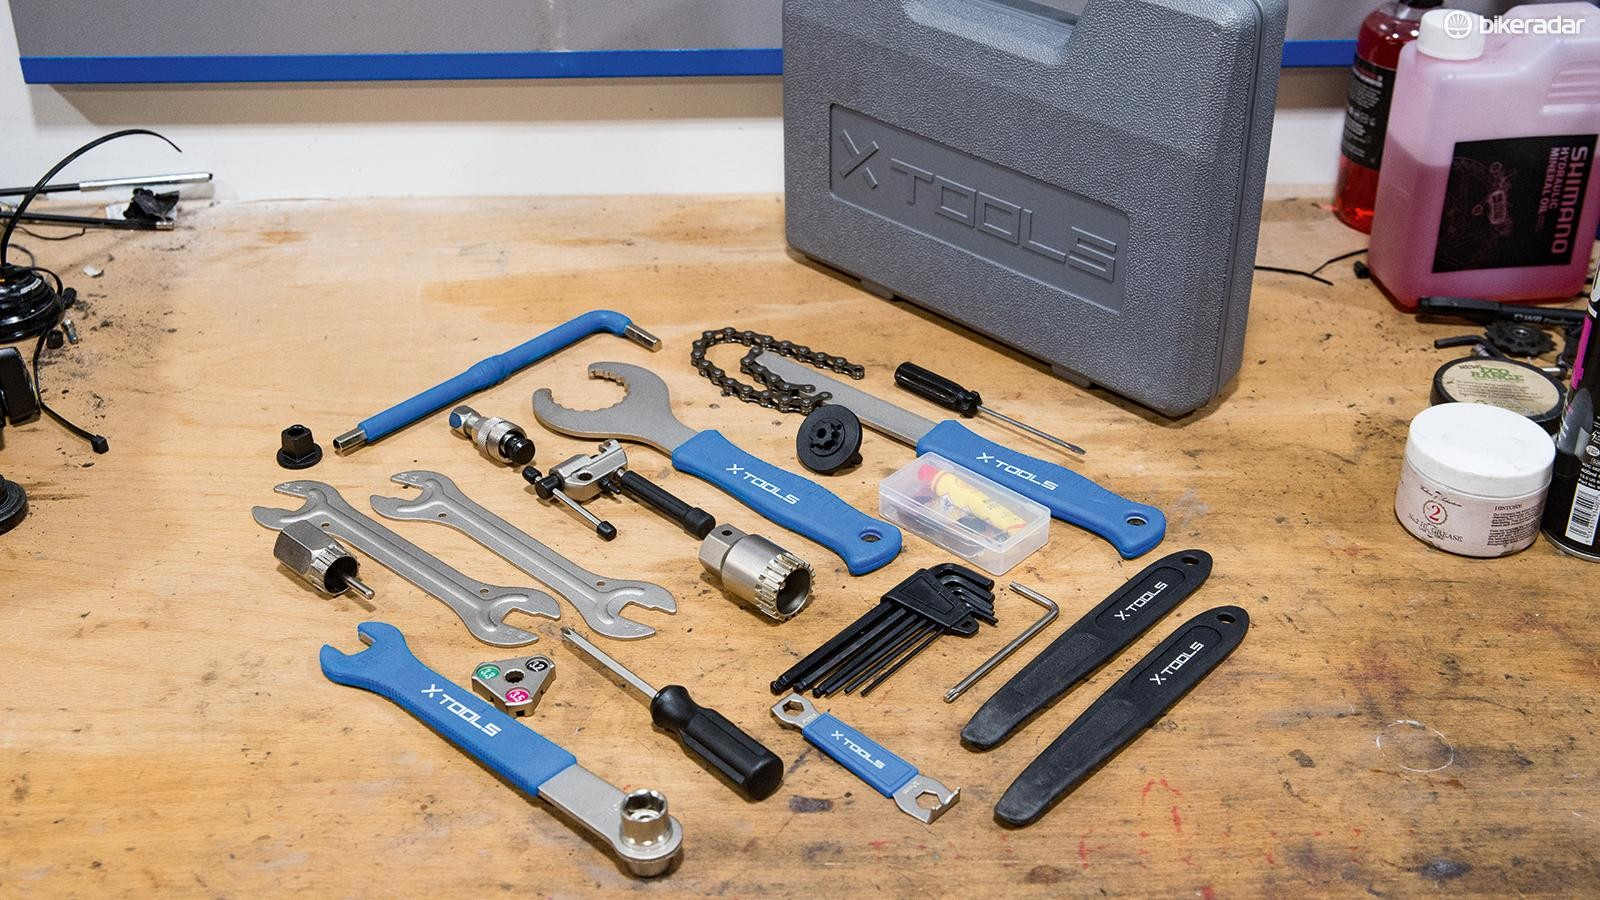 Best tool kits for bikes in 2019 | Top choices for the home mechanic